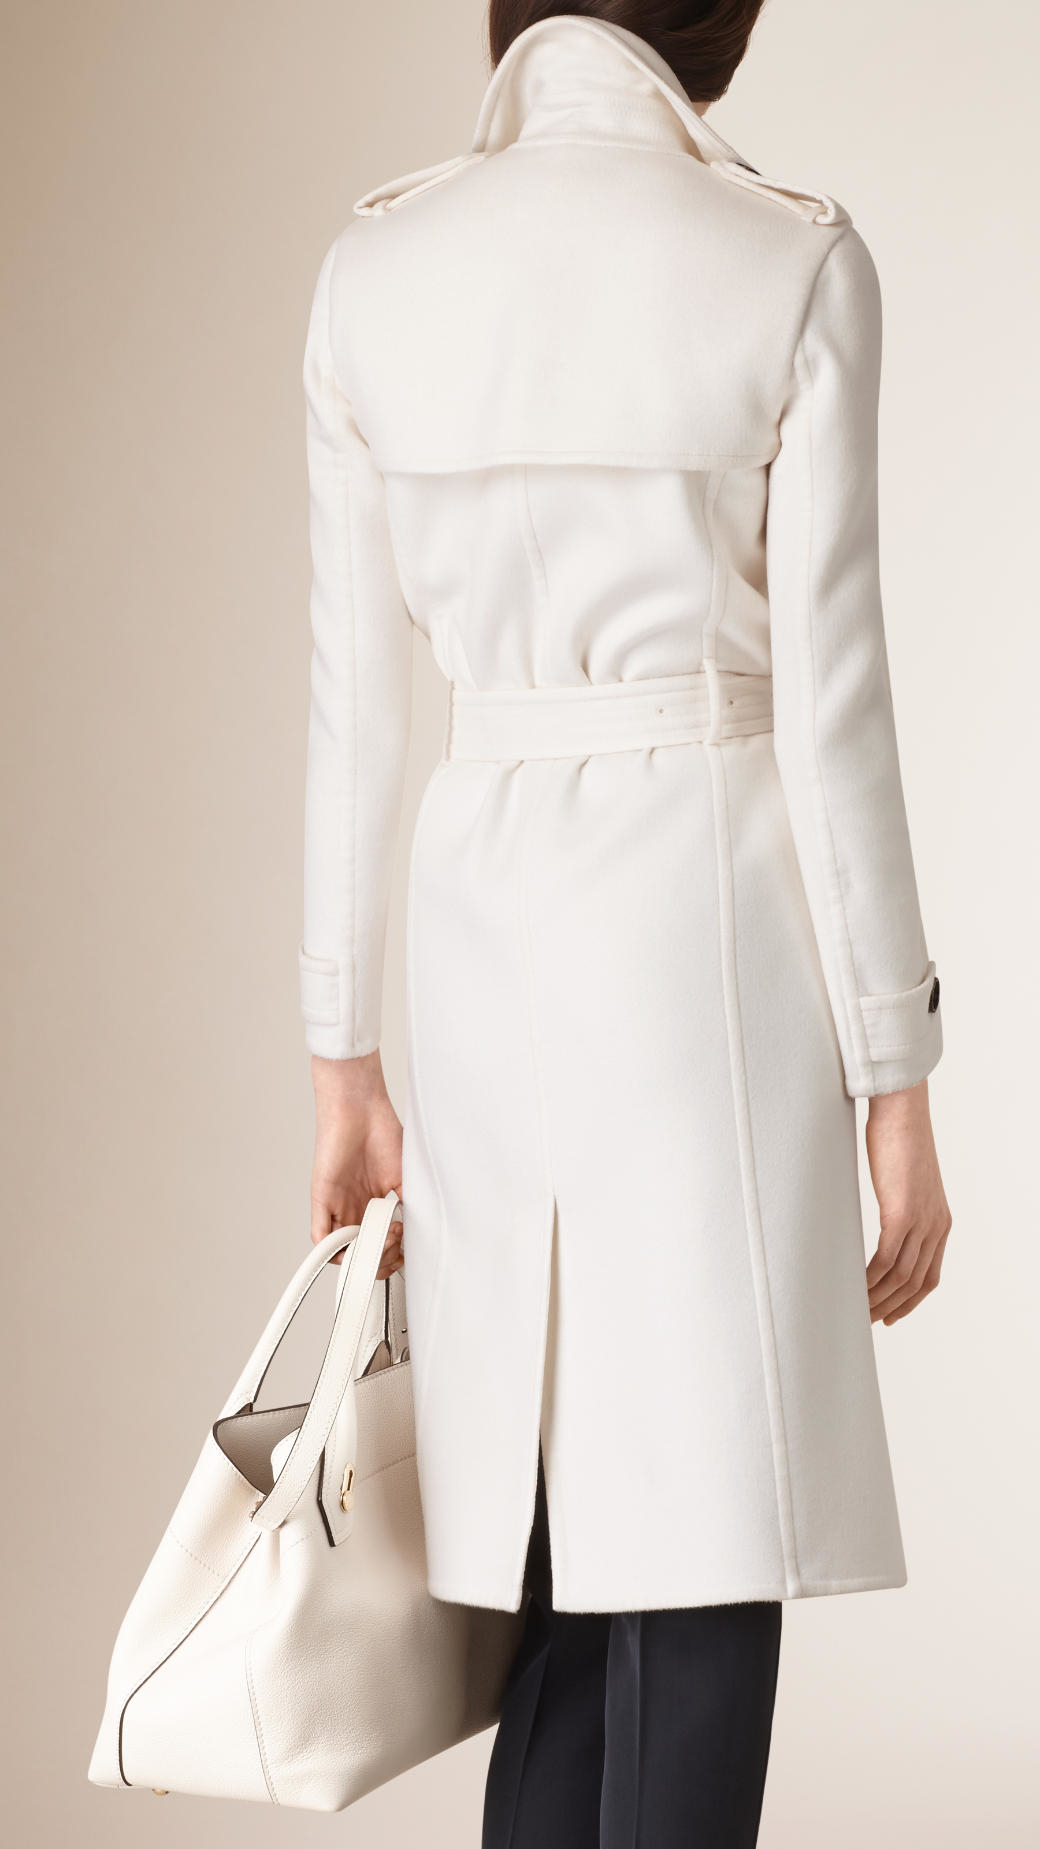 Burberry White Trench May 2017